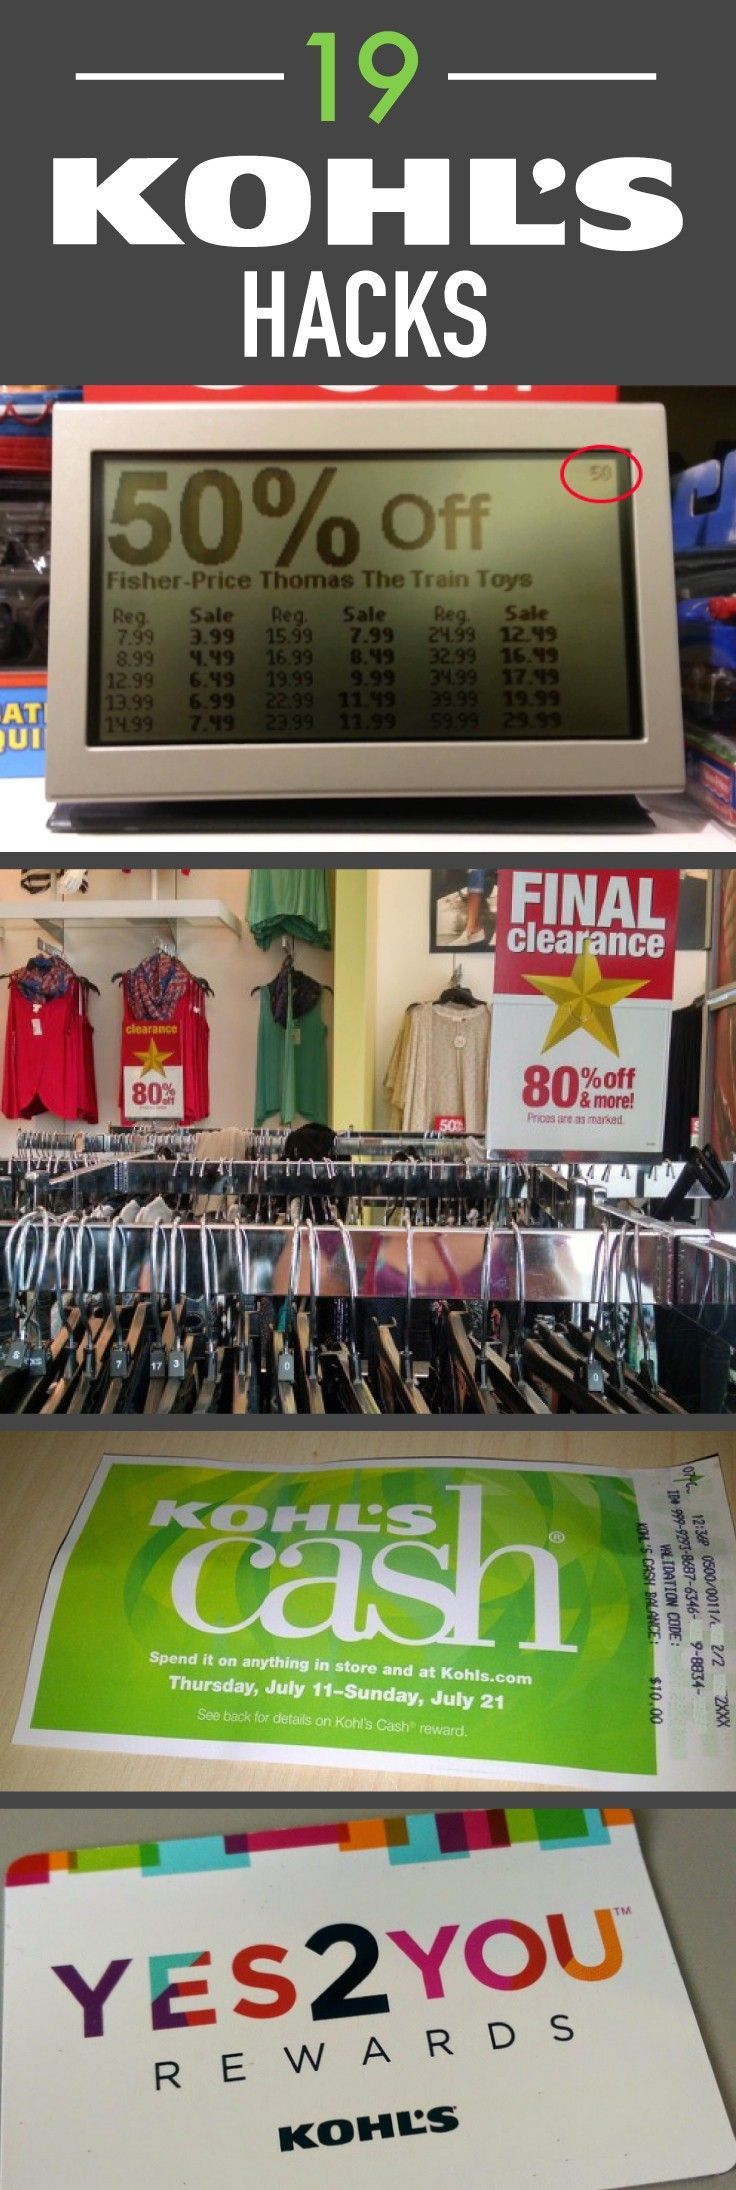 Check out these hacks before you buy anything else from Kohls!